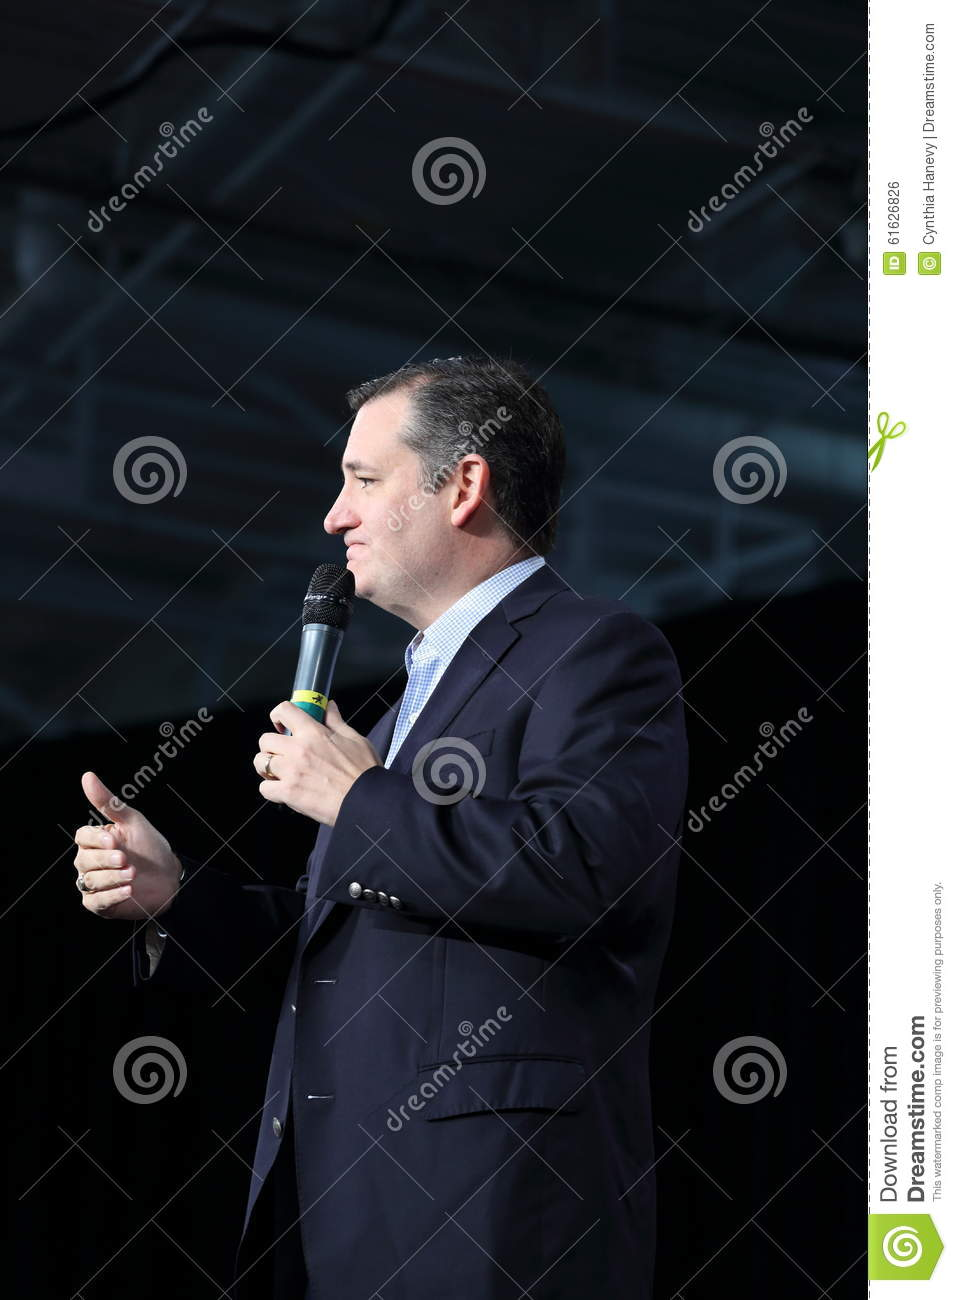 Texas Senator Ted Cruz gives a thumbs up to audience.